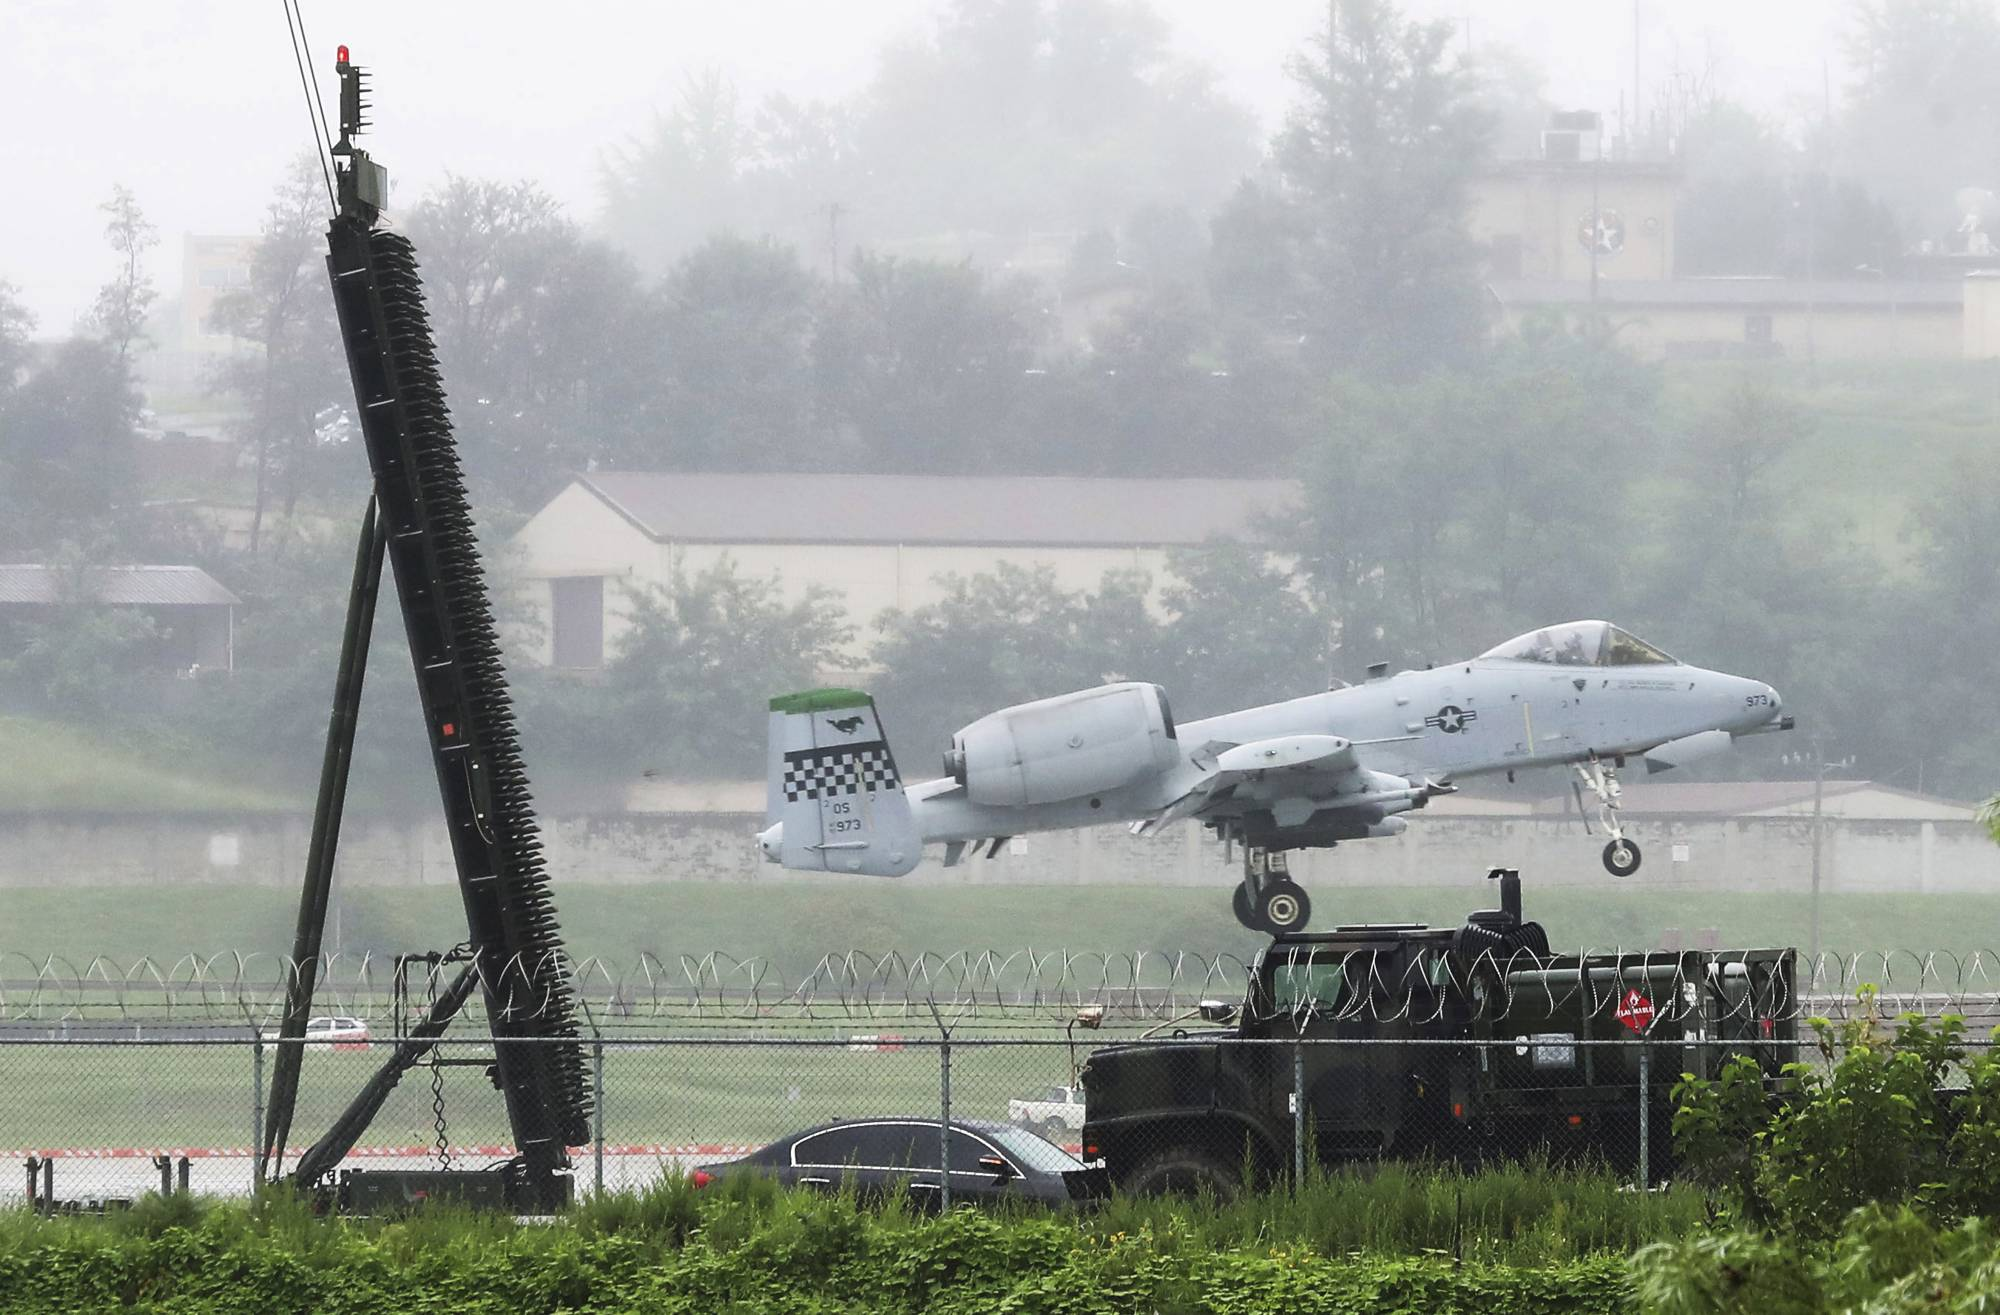 A U.S. Air Force A-10 Warthog lands on the runway at the Osan U.S. Air Base in Pyeongtaek, South Korea, Thursday, Aug. 10, 2017. North Korea on Wednesday officially dismissed President Donald Trump's threats of